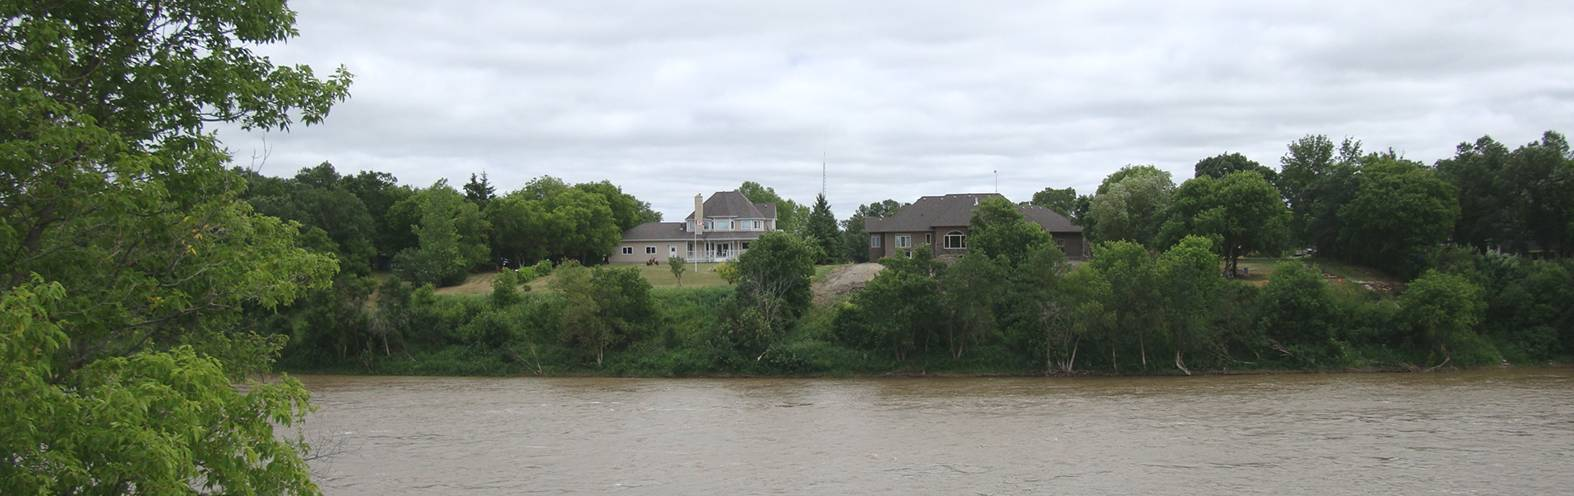 Picture:  The view across the river from Lower Fort Garry, Winnipeg, Manitoba, Canada